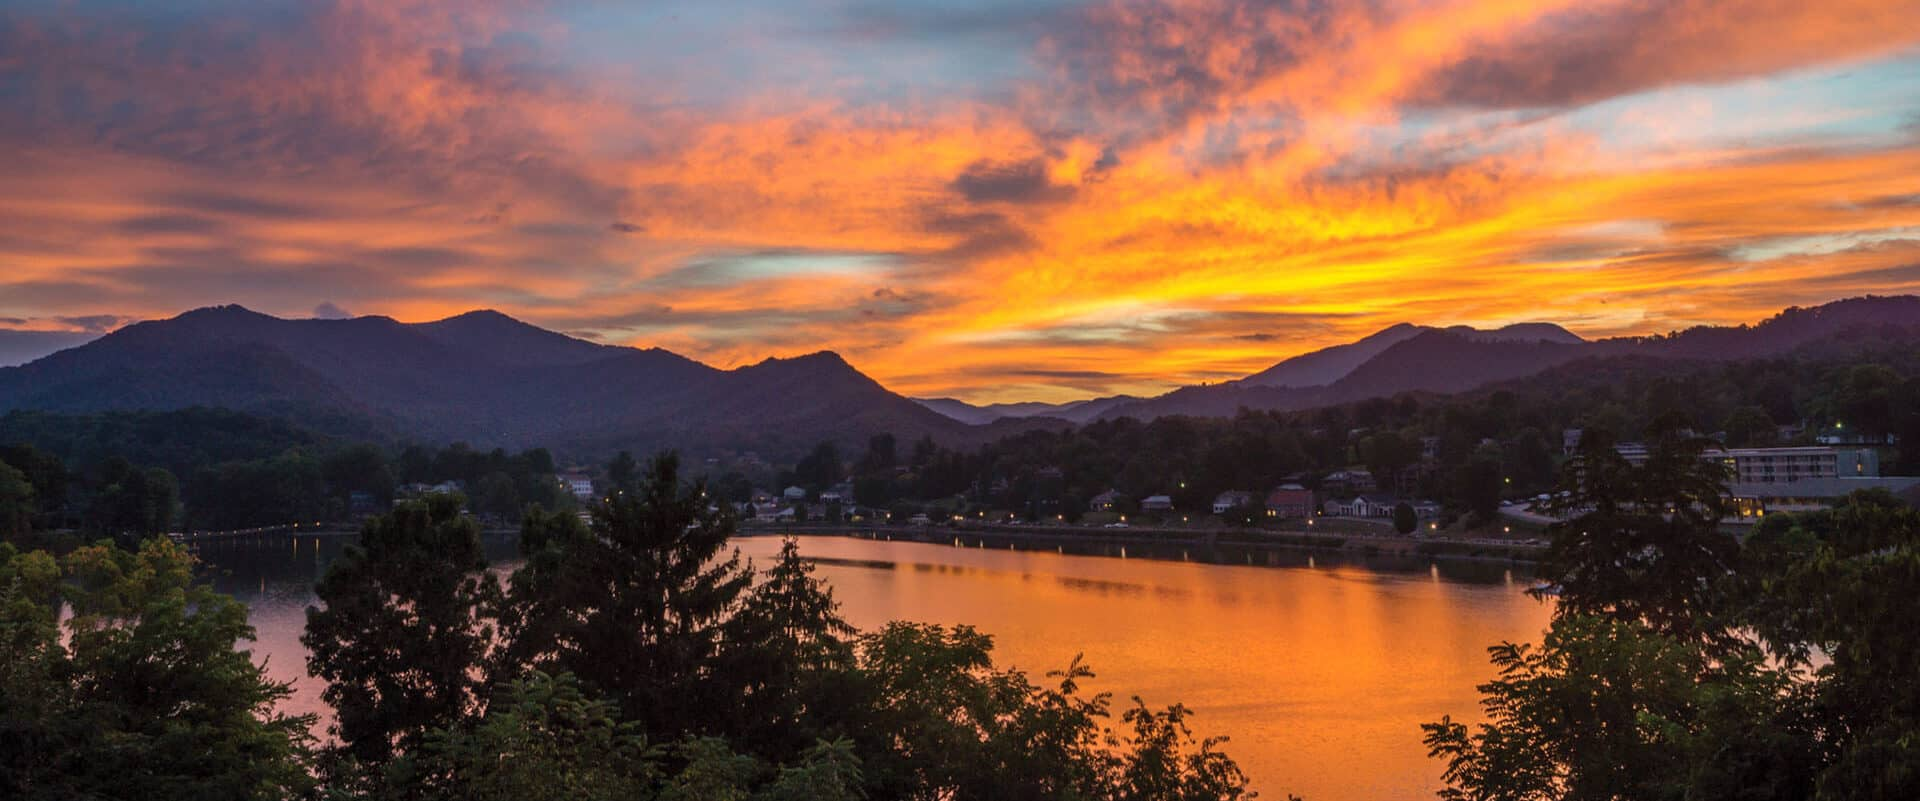 lake junaluska sunset